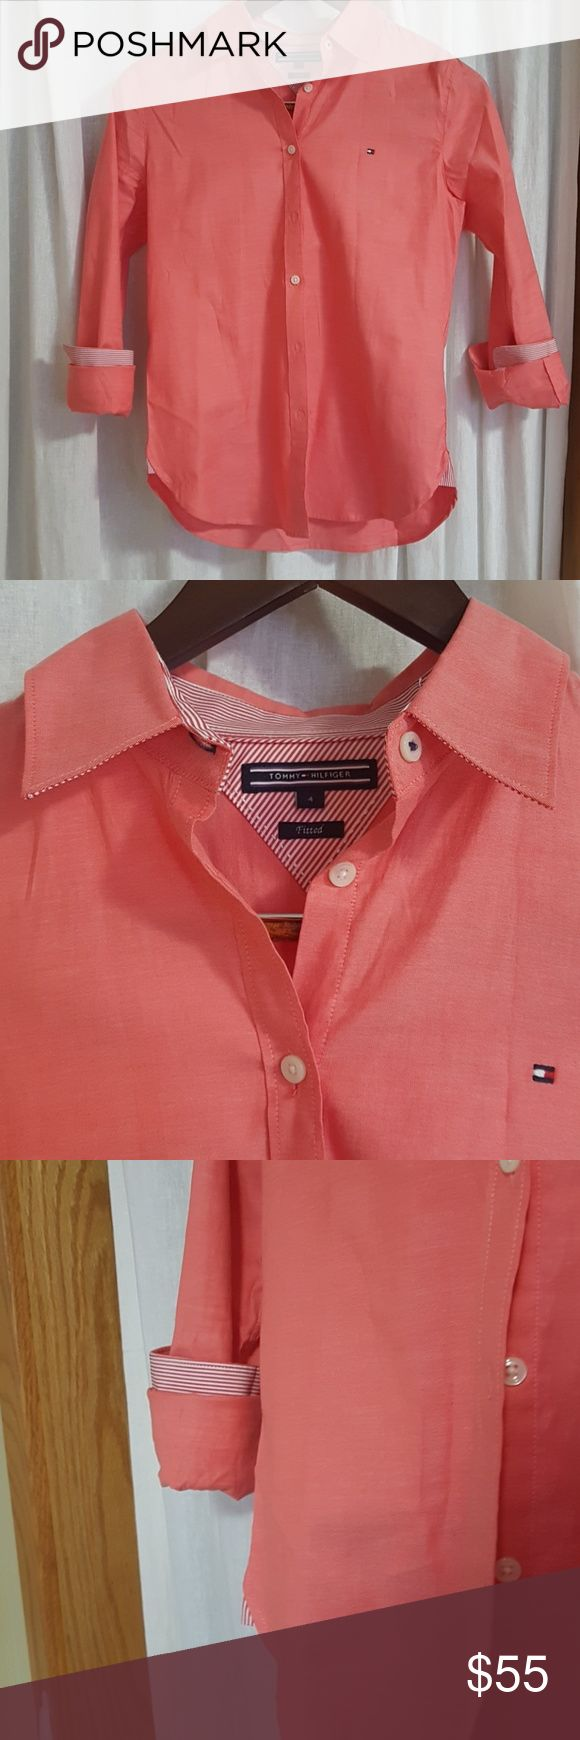 Coral tommy Hilfiger shirt This beautiful Tommy Hilfiger shirt is perfect for warmer weathers. This gorgeous shirt is a must have for a dressy yet cute summer preppy outfit. This shirt was worn once and is in excellent condition. This was purchased at an authentic Tommy Hilfiger store in Korea. Tommy Hilfiger Tops Button Down Shirts